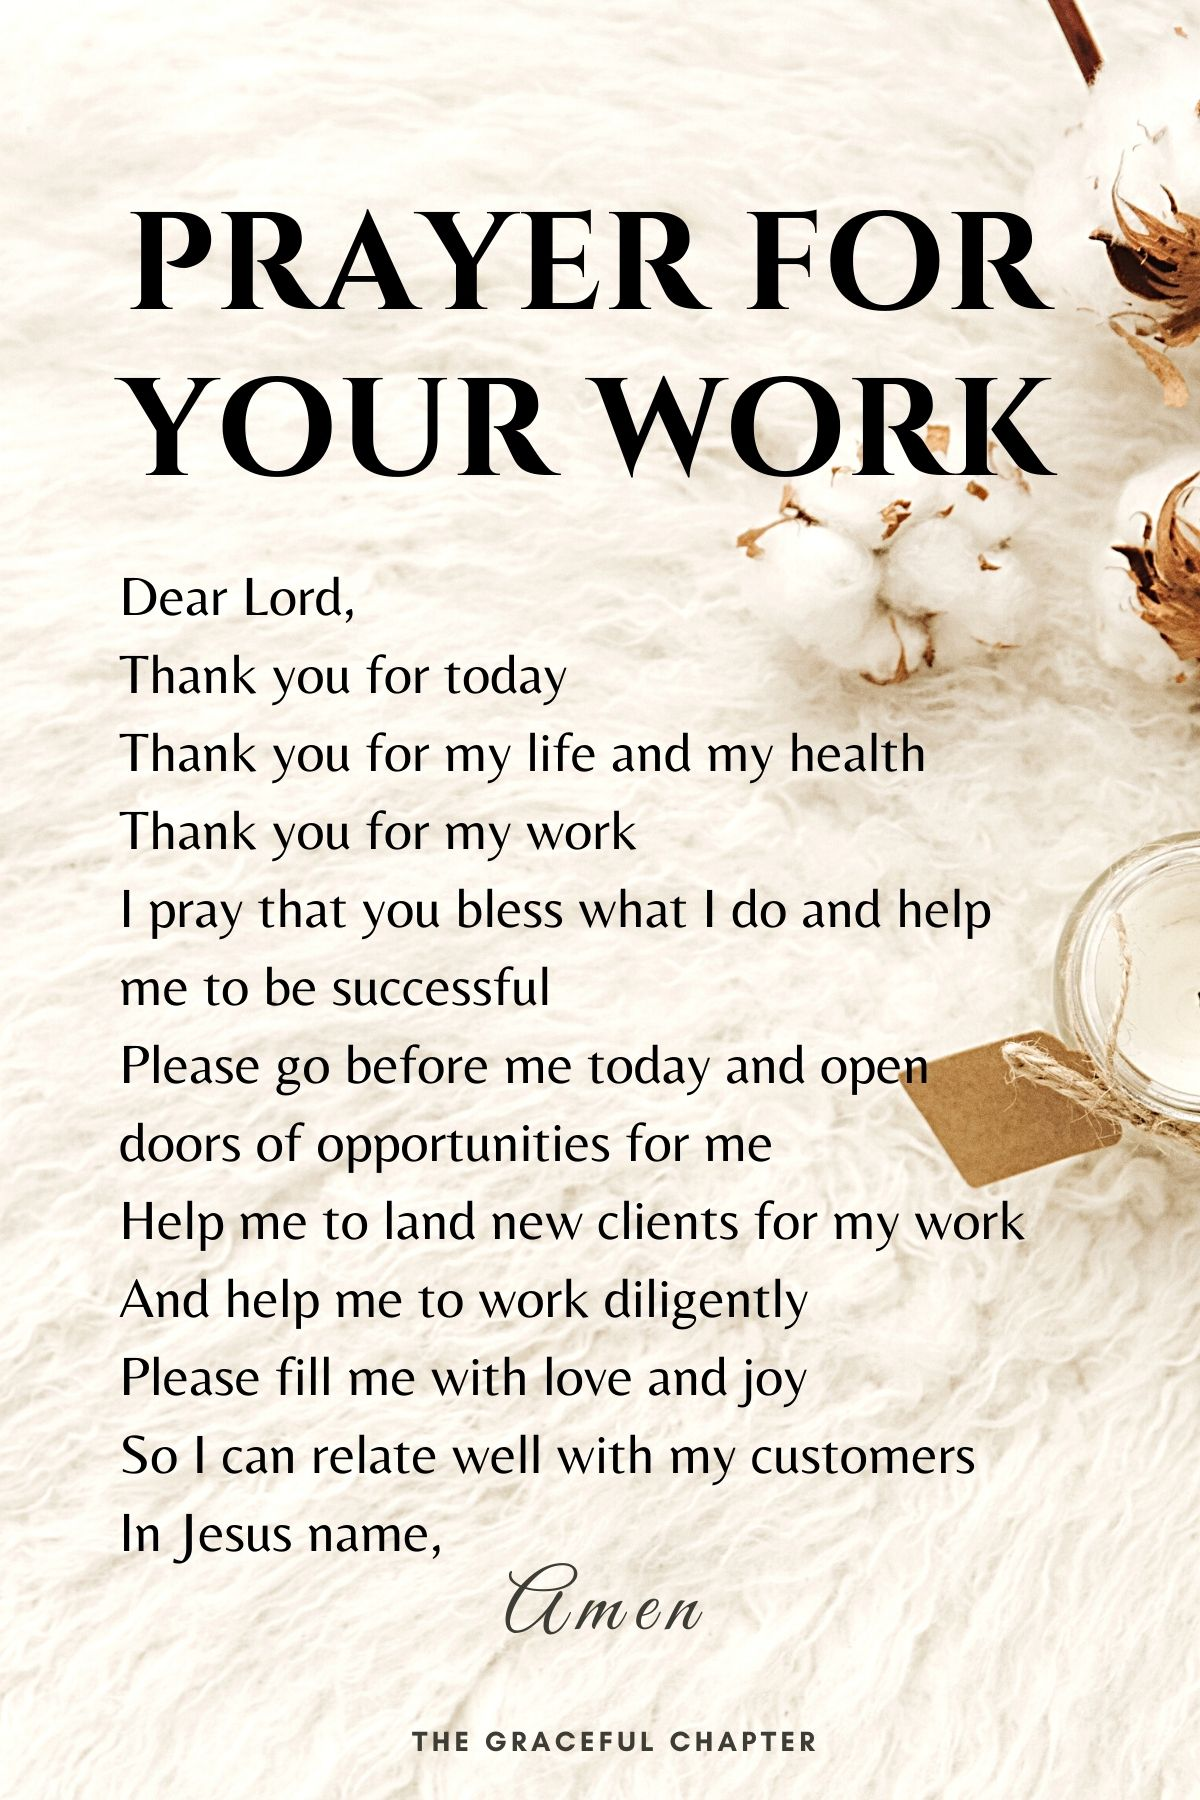 Prayer for your work